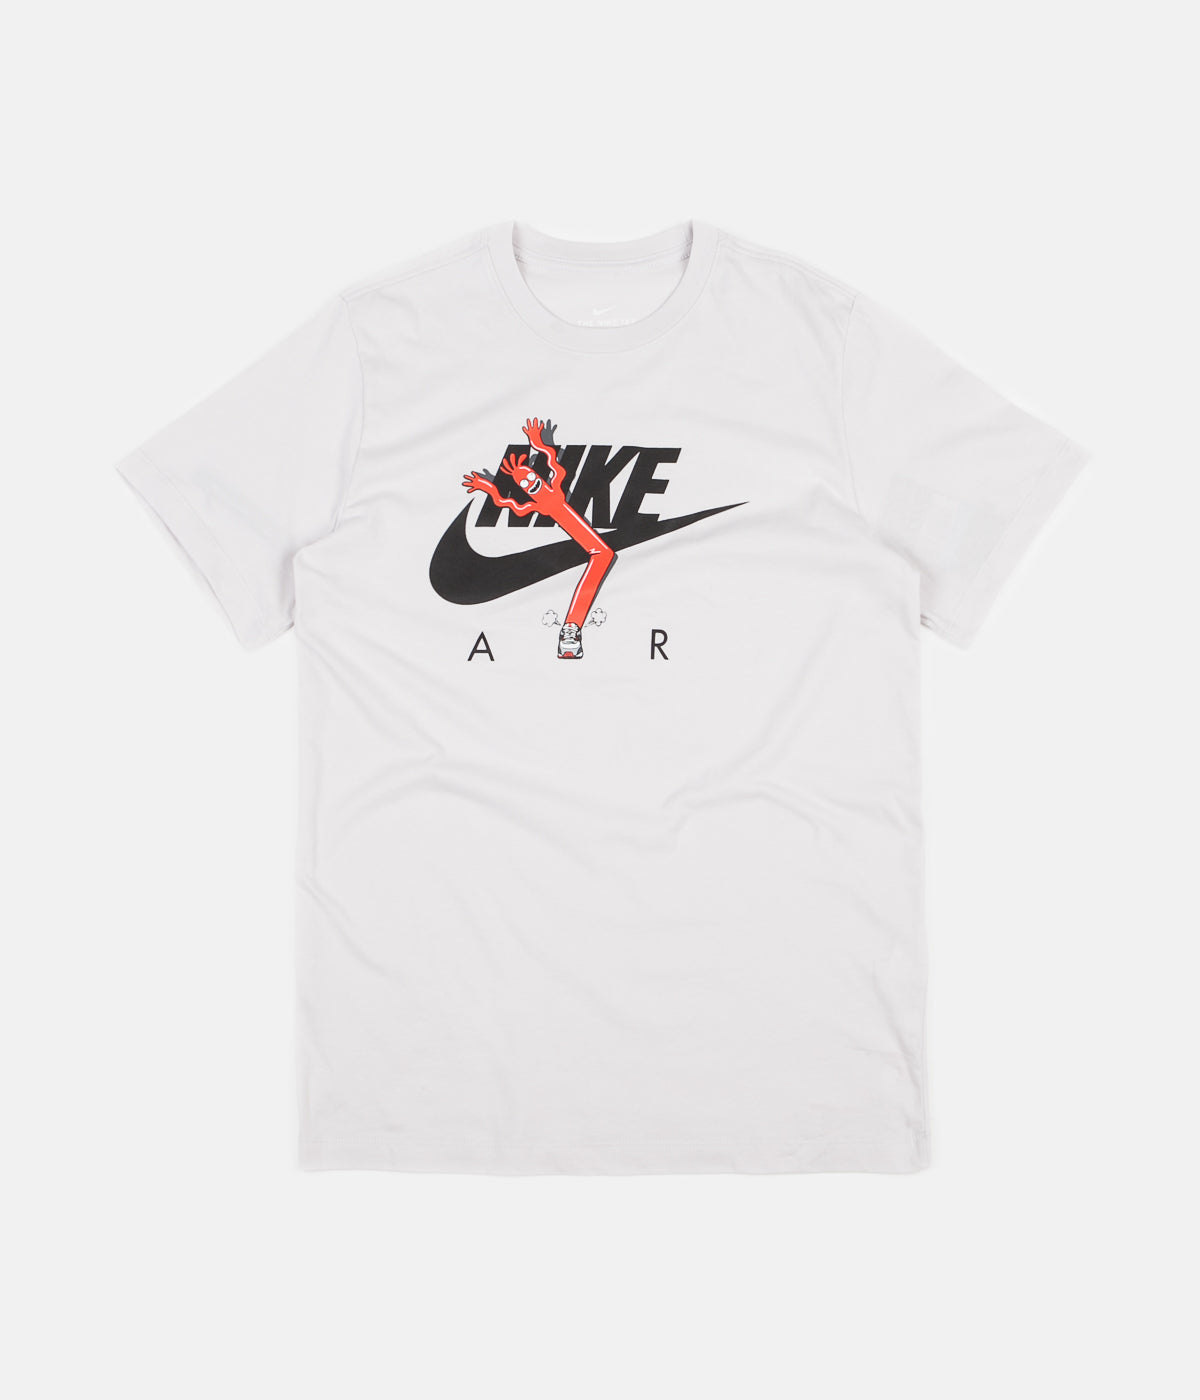 Nike Air Max 1 Tee T Shirt Weiss F100 | Lifestyle